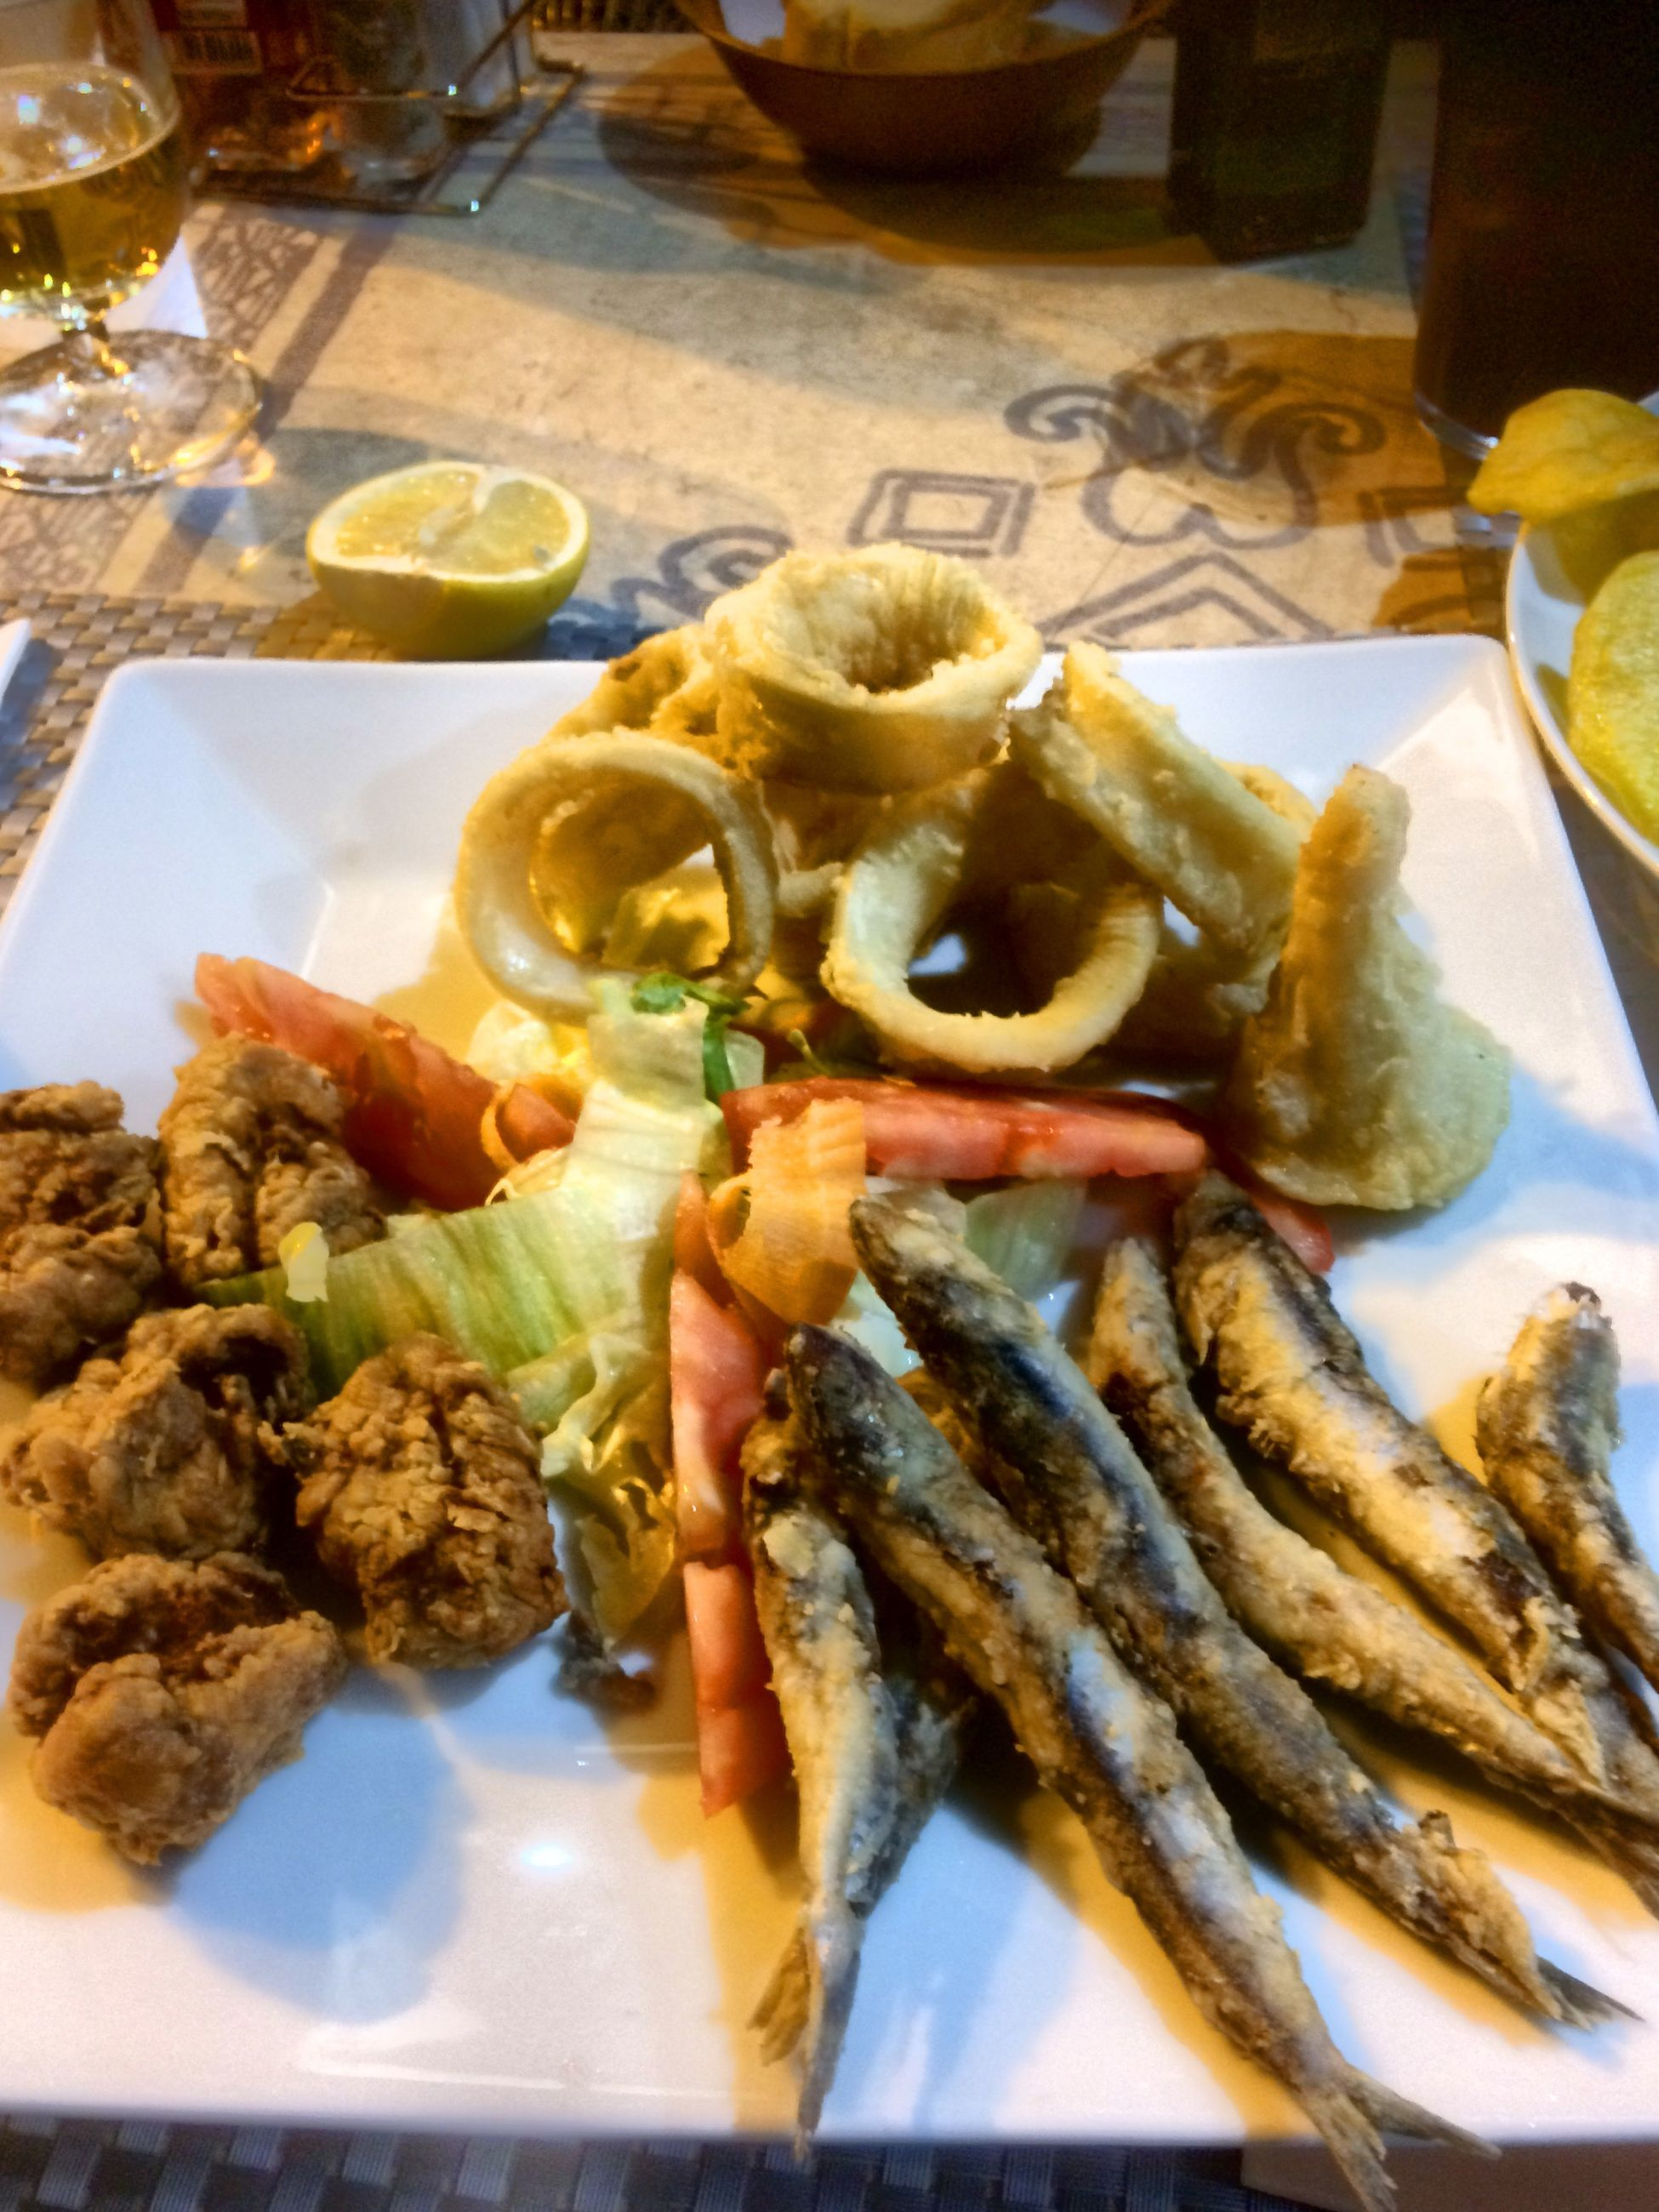 food and drink, food, ready-to-eat, plate, freshness, serving size, healthy eating, no people, table, indulgence, appetizer, seafood, meal, indoors, close-up, slice, gourmet, temptation, cooked, serving dish, day